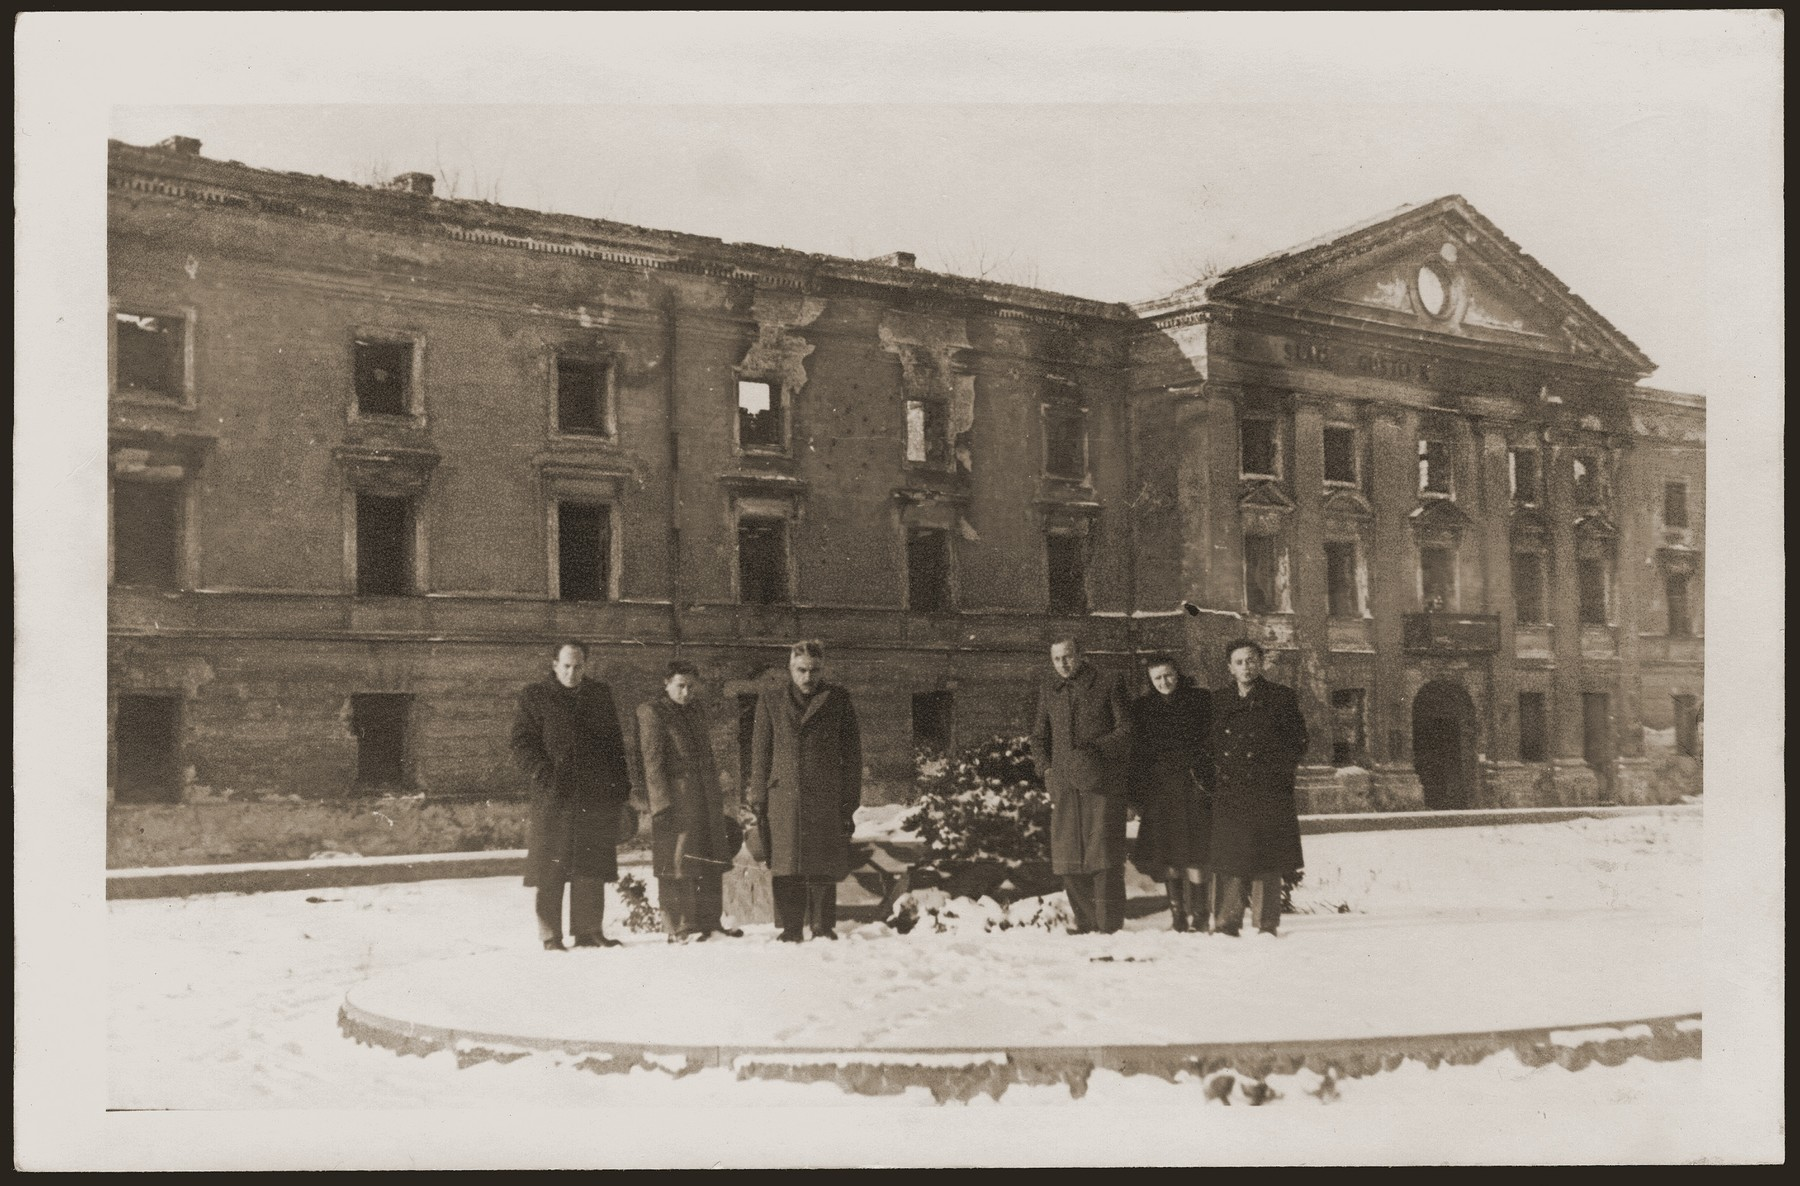 Meir Yaari, head of the MAPAM political party in Palestine, visits the ruins of the Judenrat building in the former Warsaw ghetto.  Yaari is pictured third from the left.  haika Grosman stands second from the right.